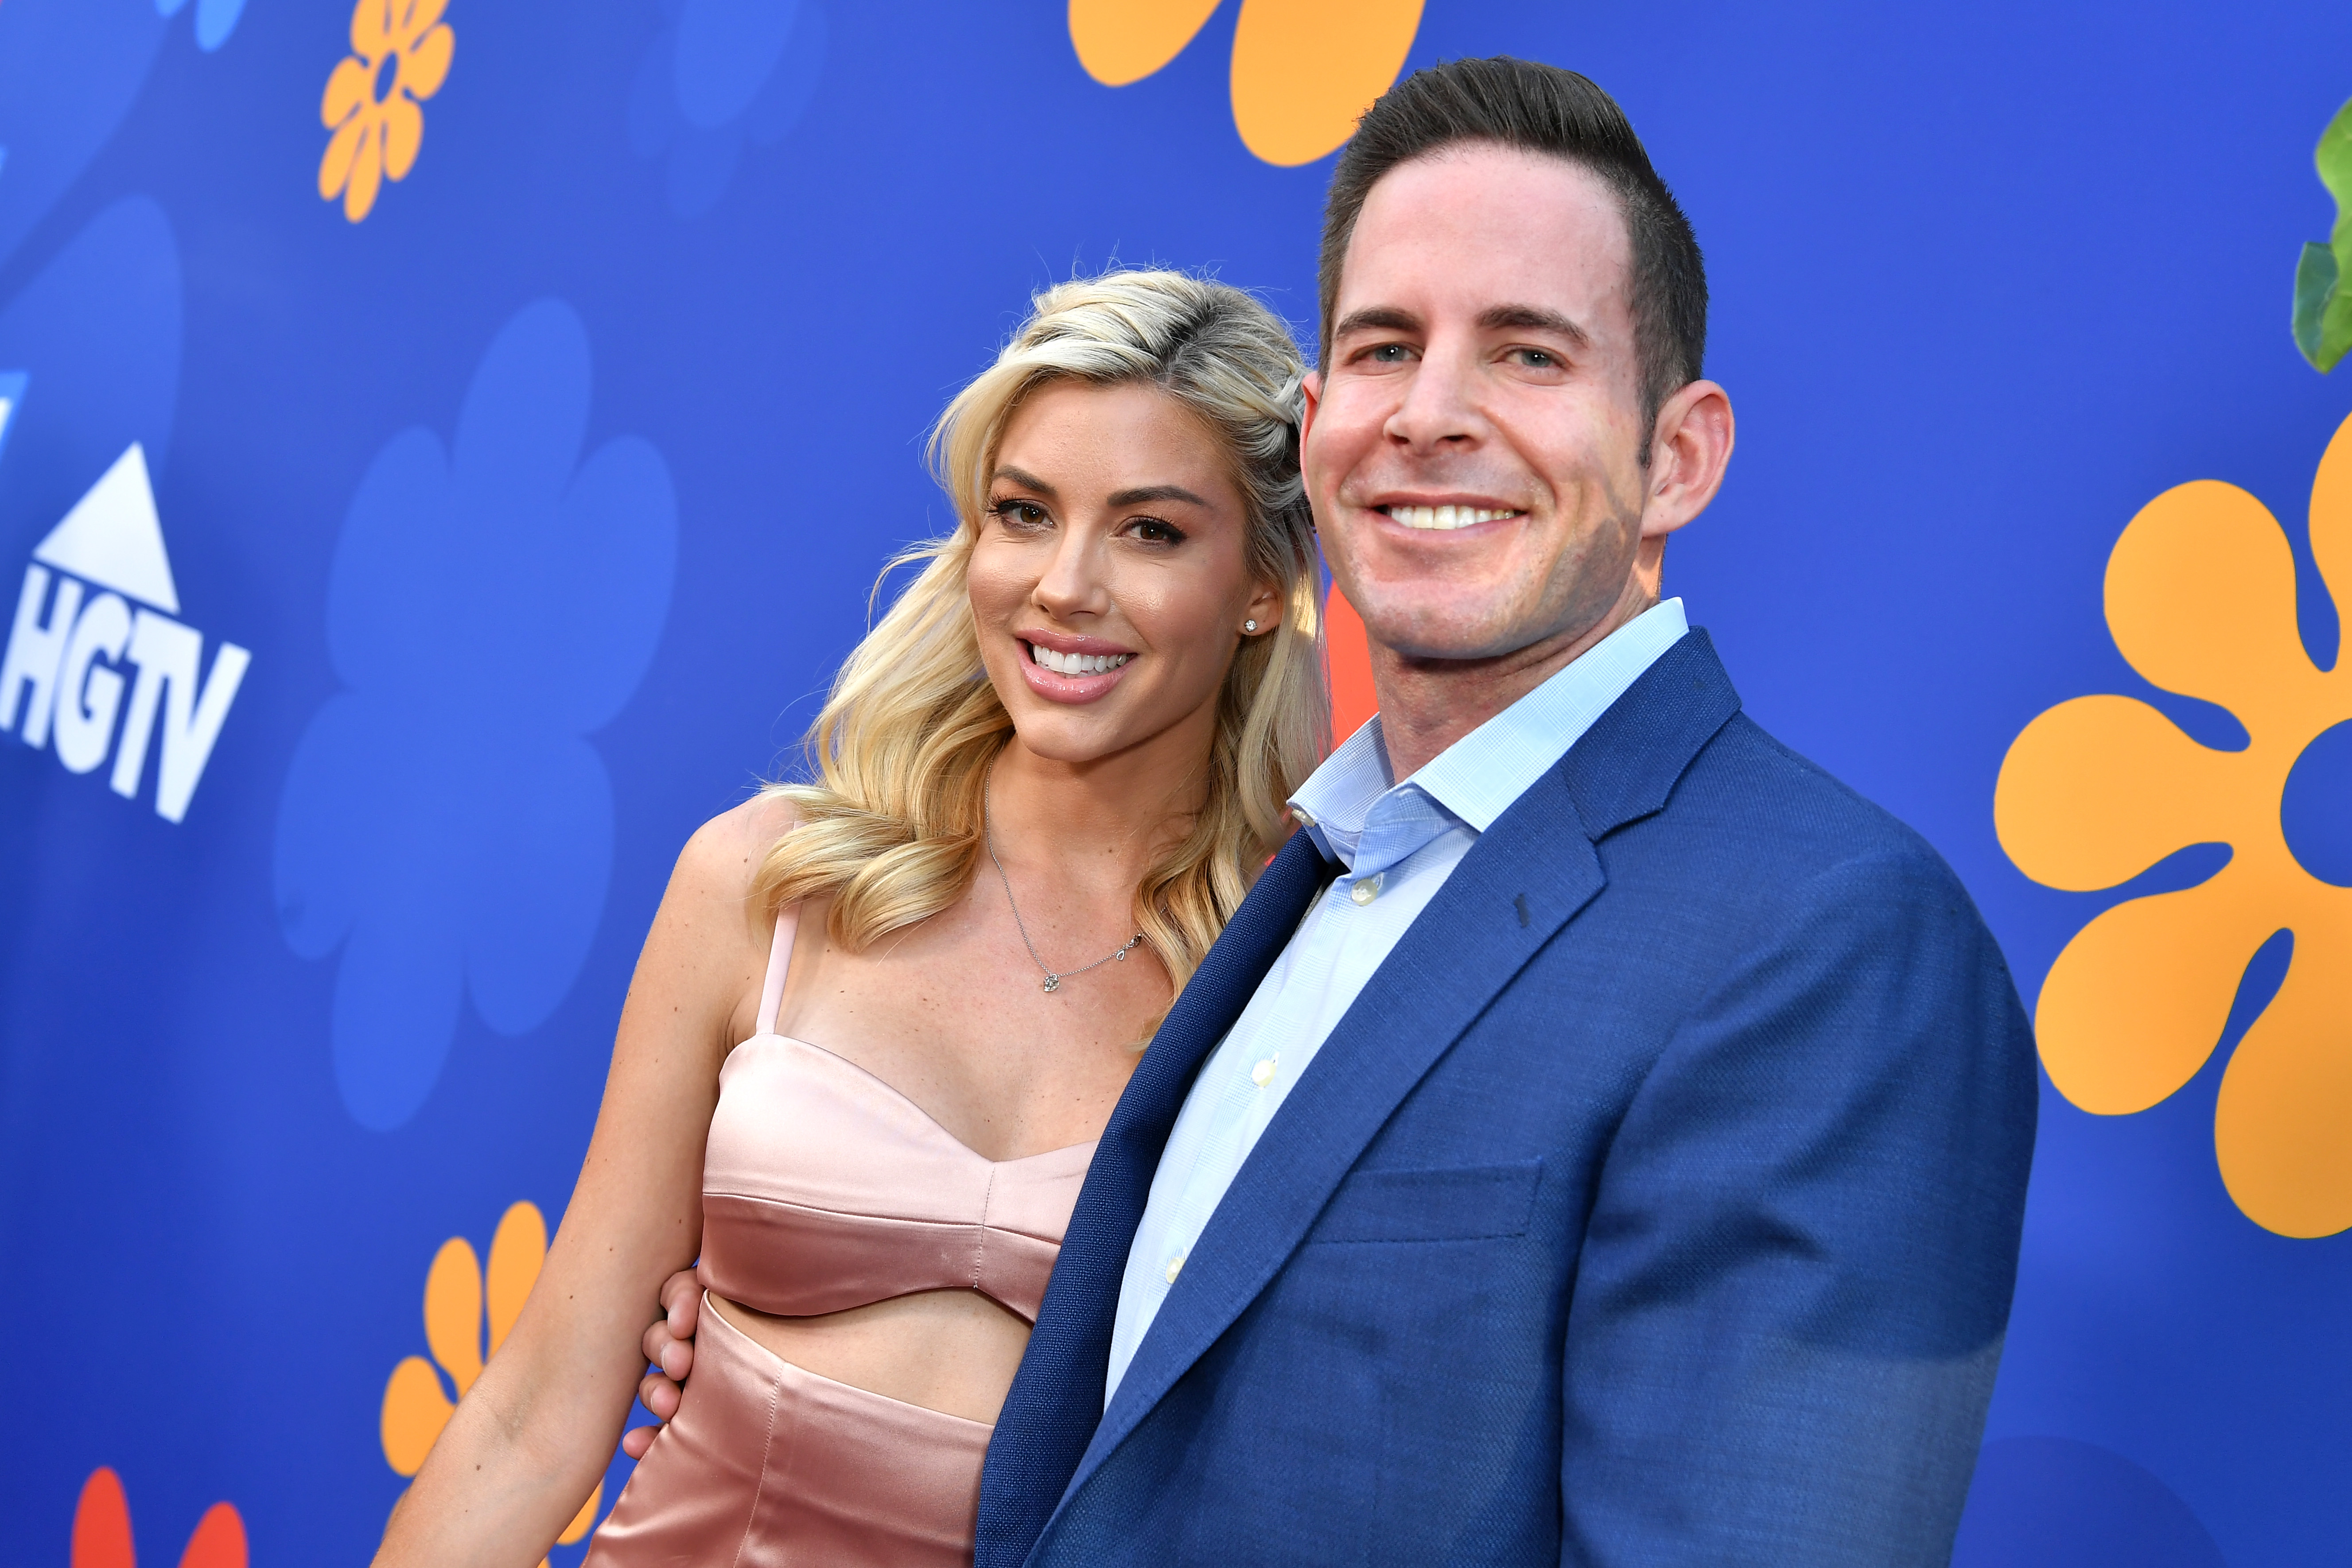 Cheers! Tarek El Moussa and GF Heather Rae Young Celebrate Her Birthday on a Yacht: 'I Love You'